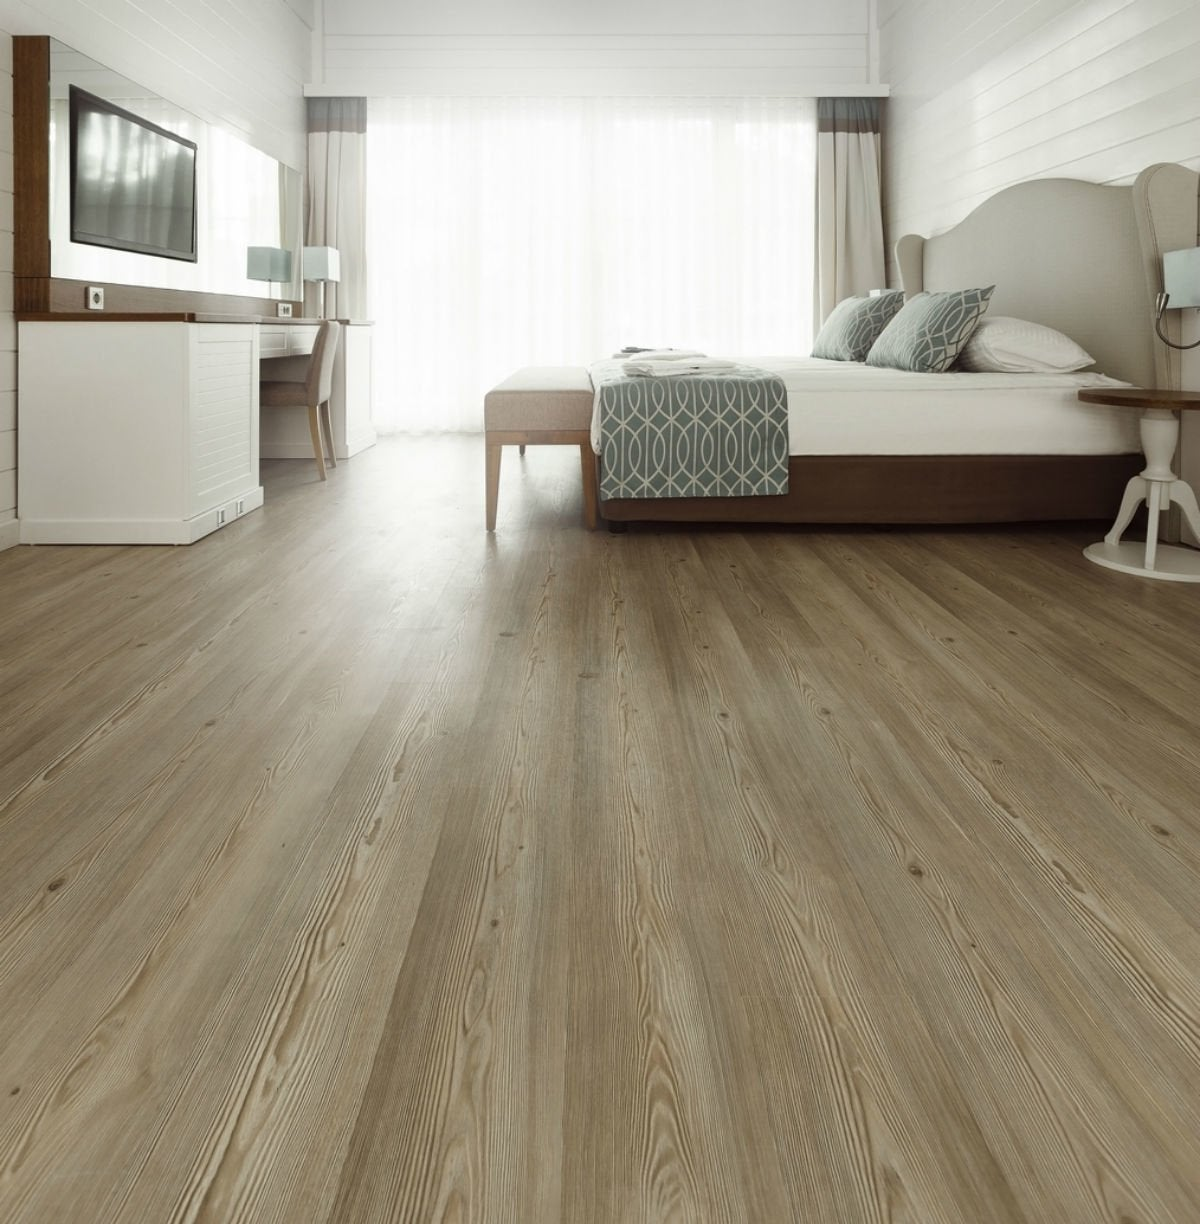 Parquet Wood Flooring Pros And Cons: The 7 Pros And Cons Of Laminate Flooring